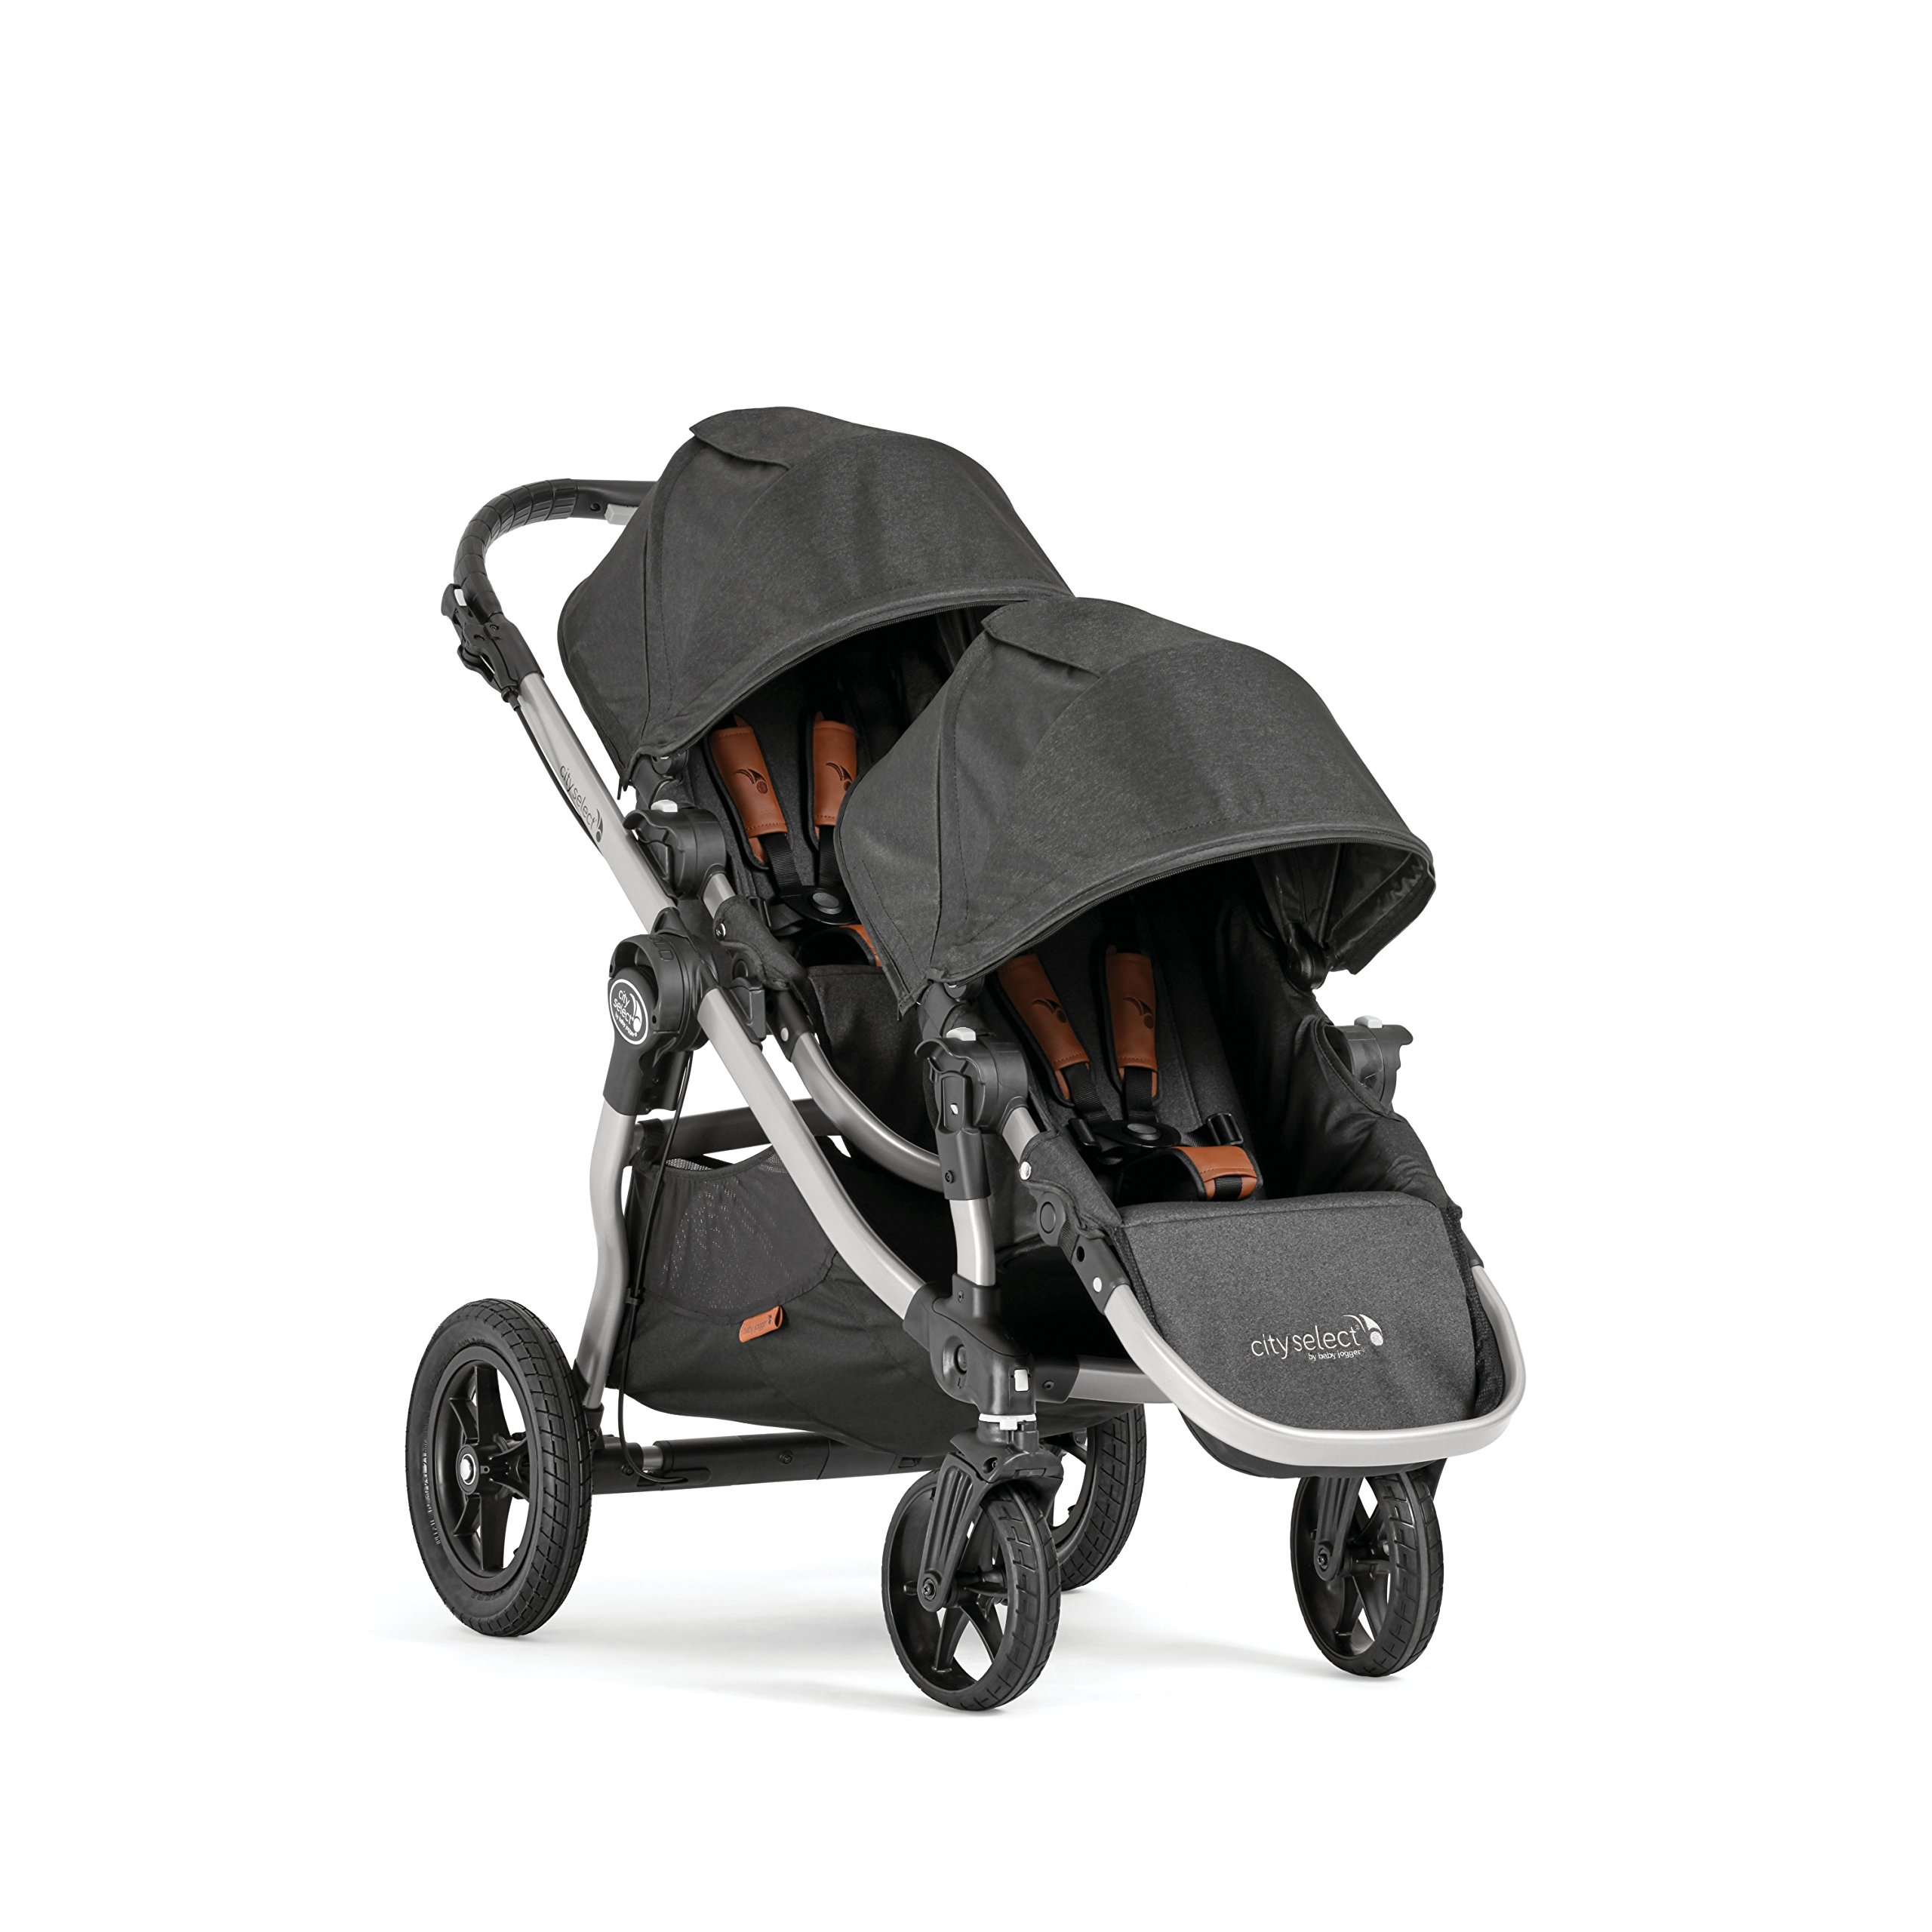 Baby Jogger Anniversary City Stroller Kit, Select Second Seat